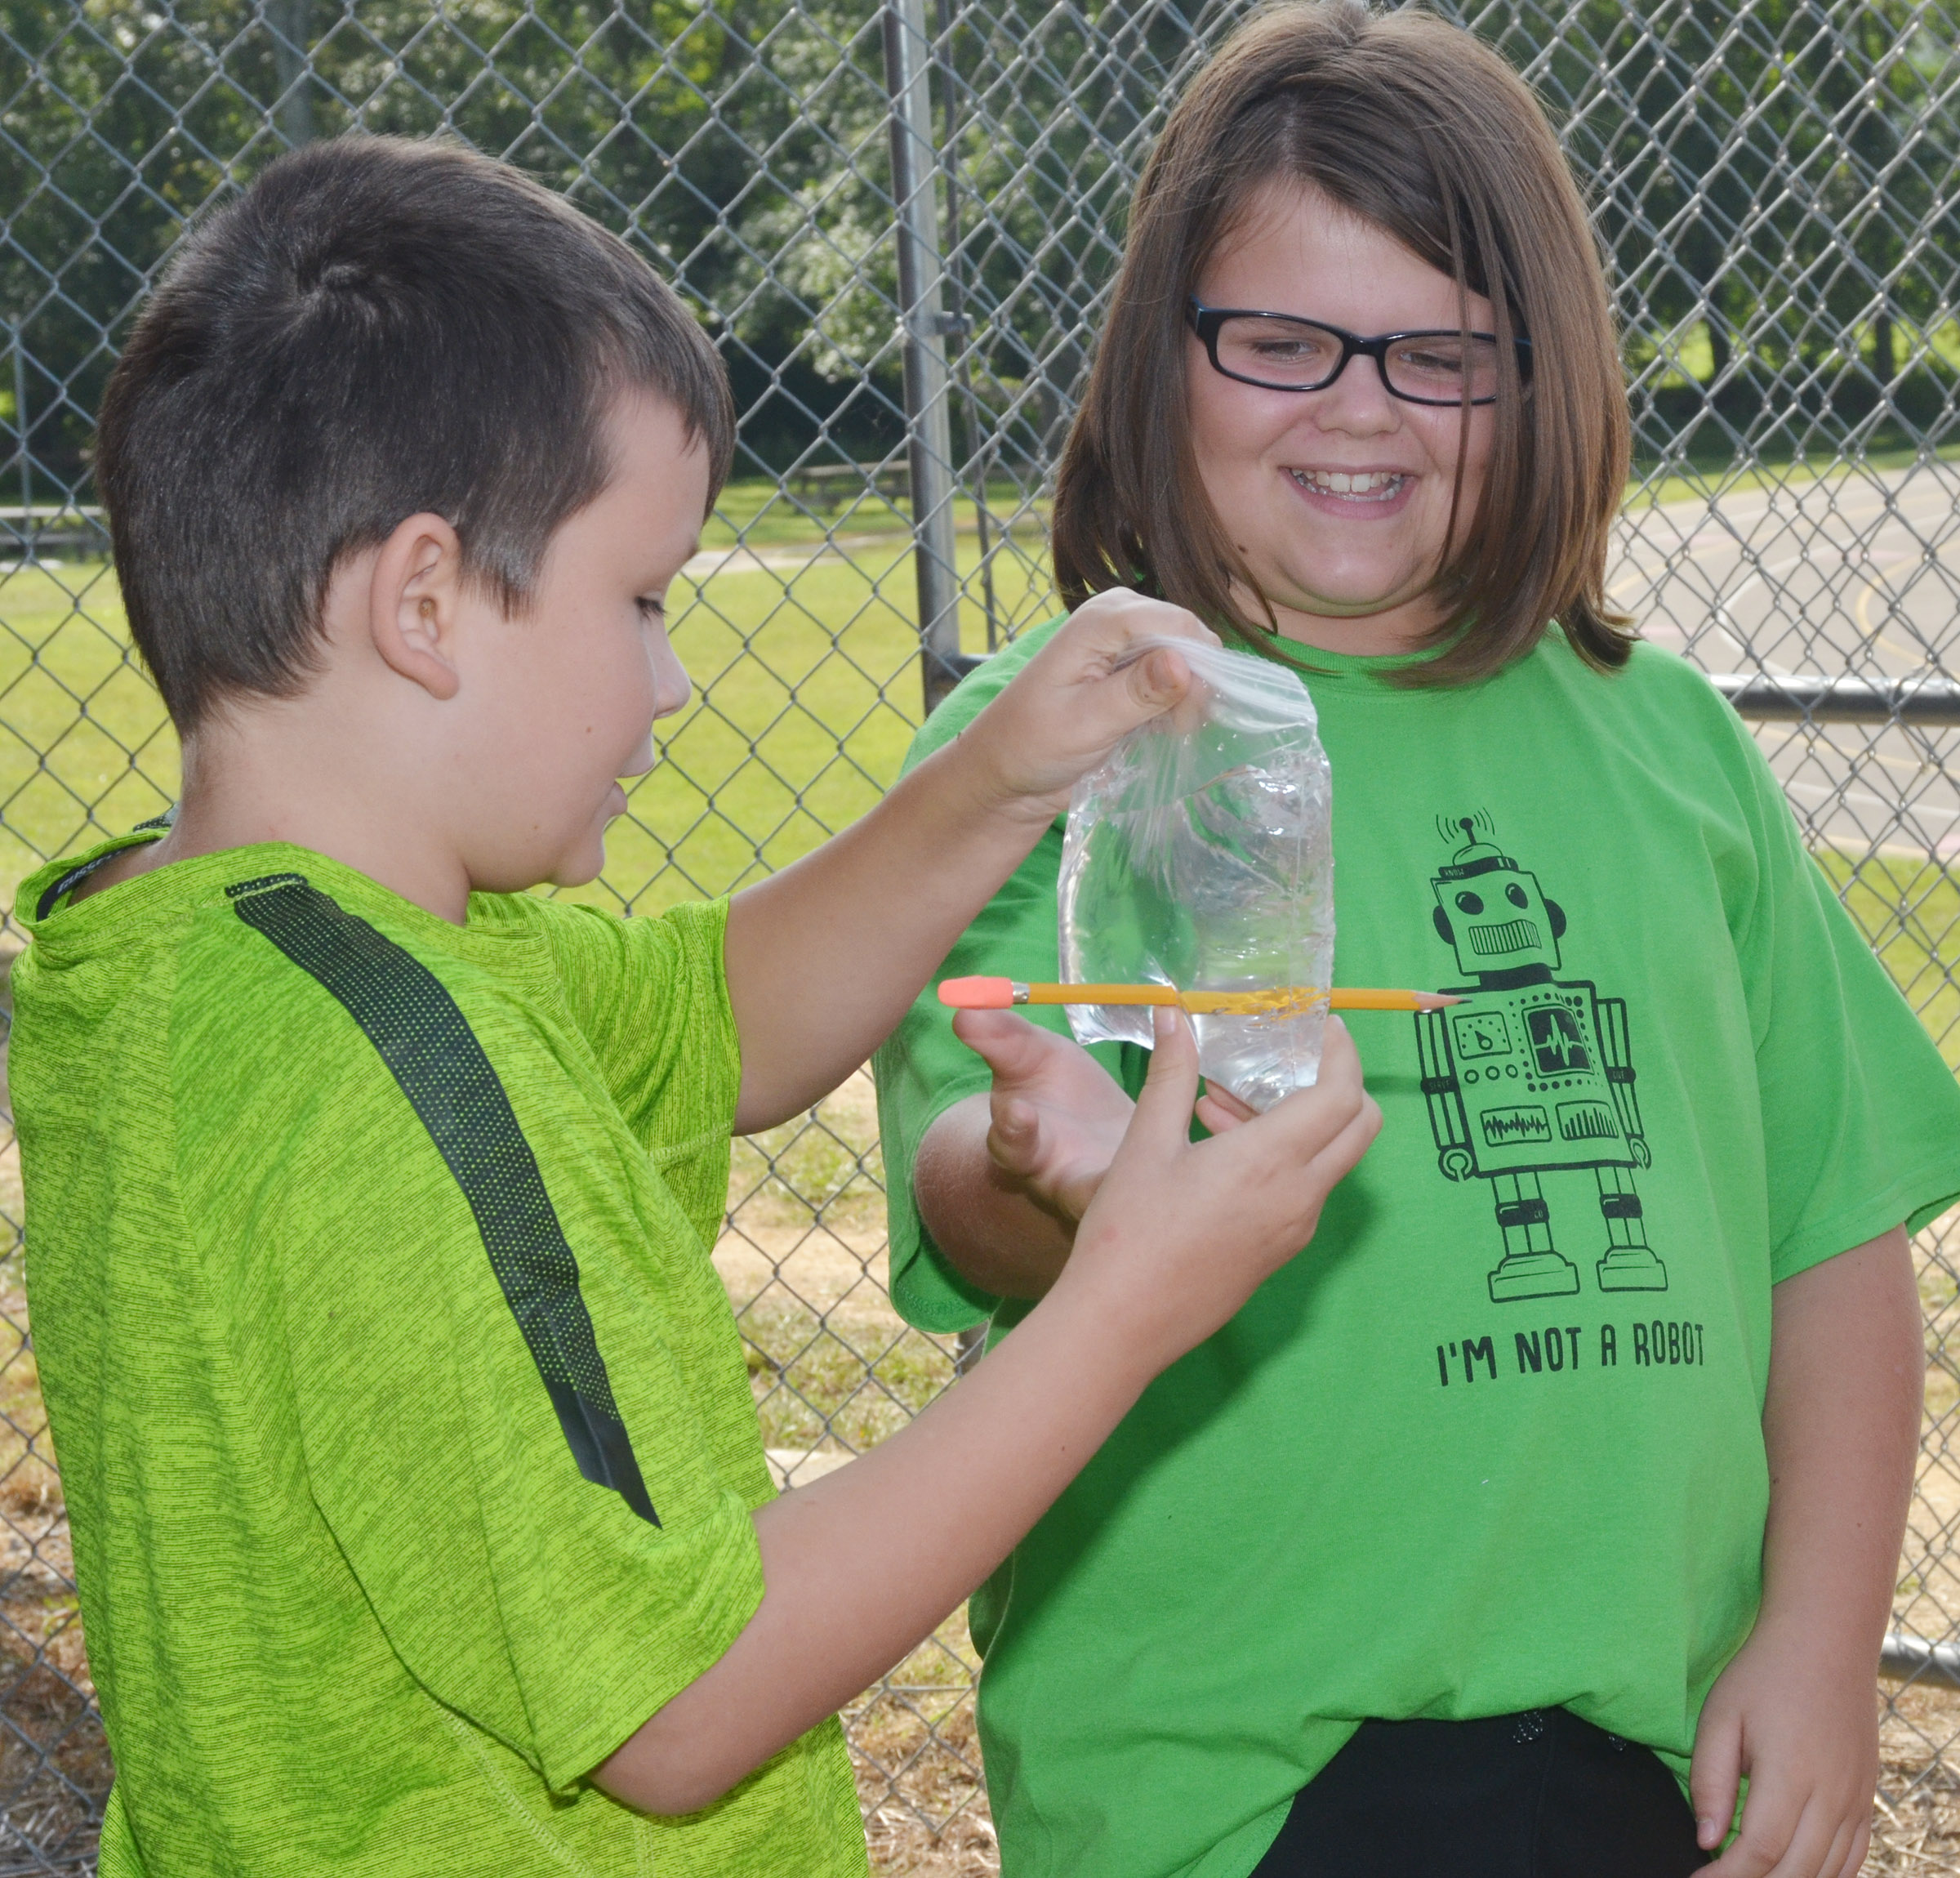 CES fifth-graders Mason Fisher, at left, and Keeley Dicken see how a Ziploc bag acts as a polymer, and, therefore, water inside doesn't spill when a pencil pierces the bag.